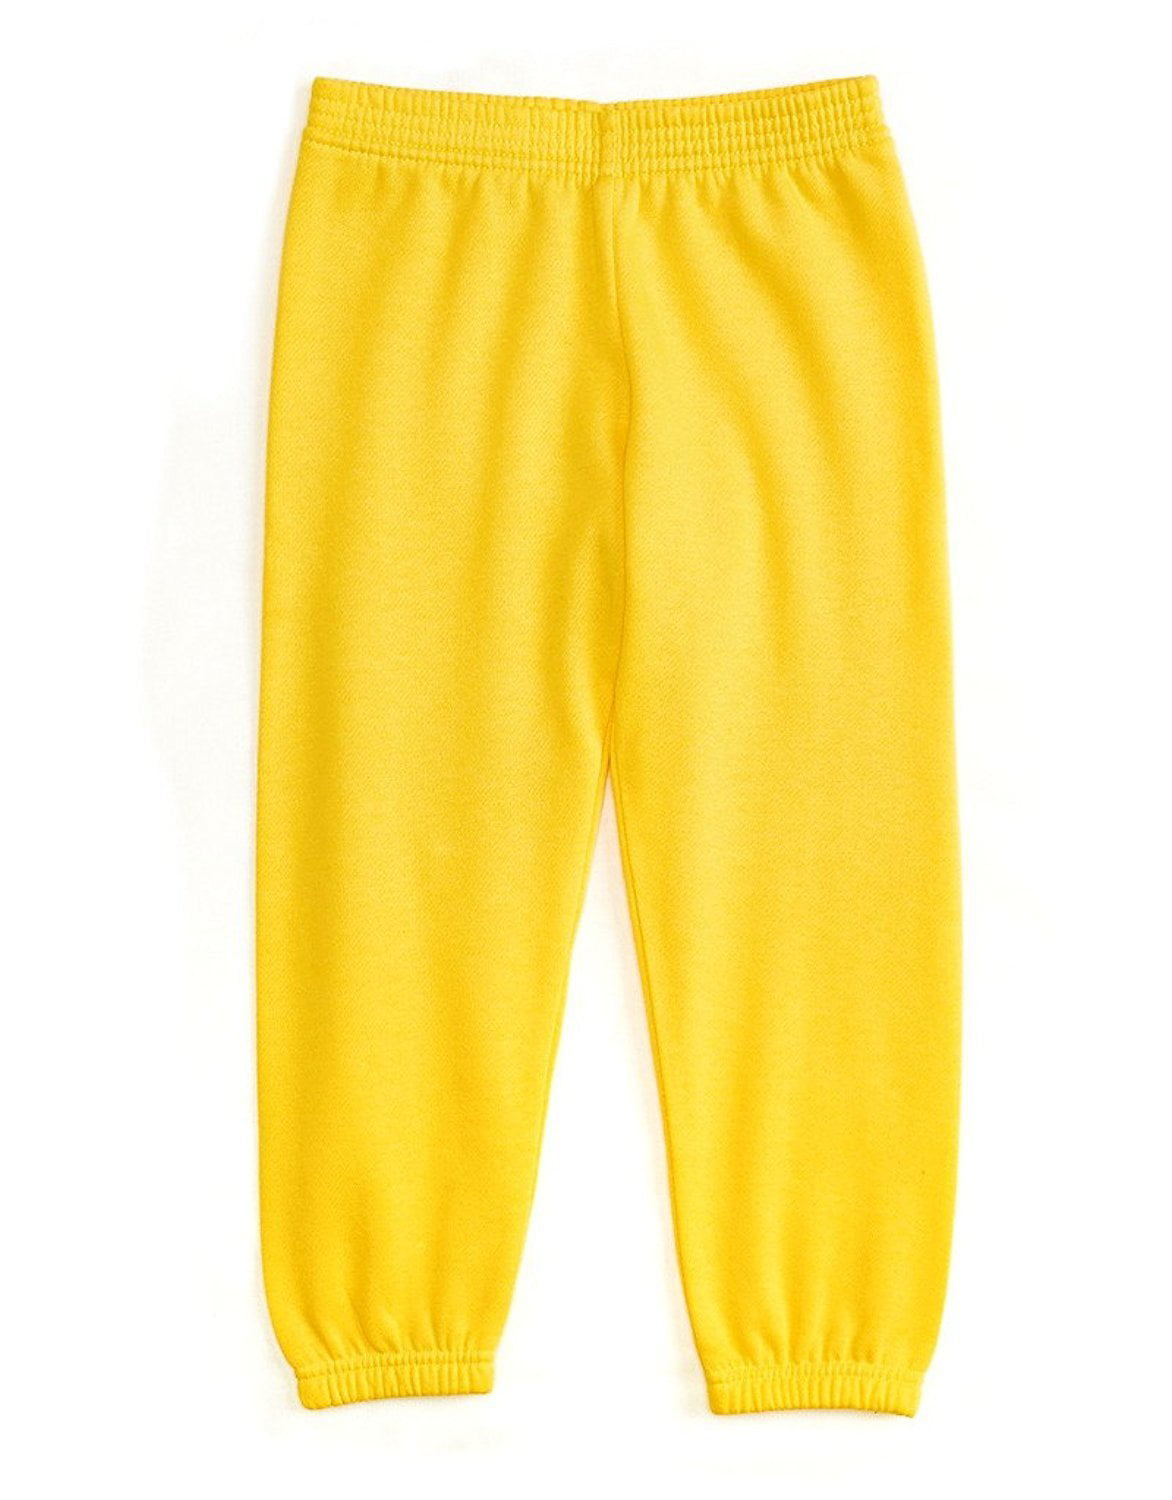 Youth Jogger Pants for Teenager Boys I Love Science Soft//Cozy Sweatpants